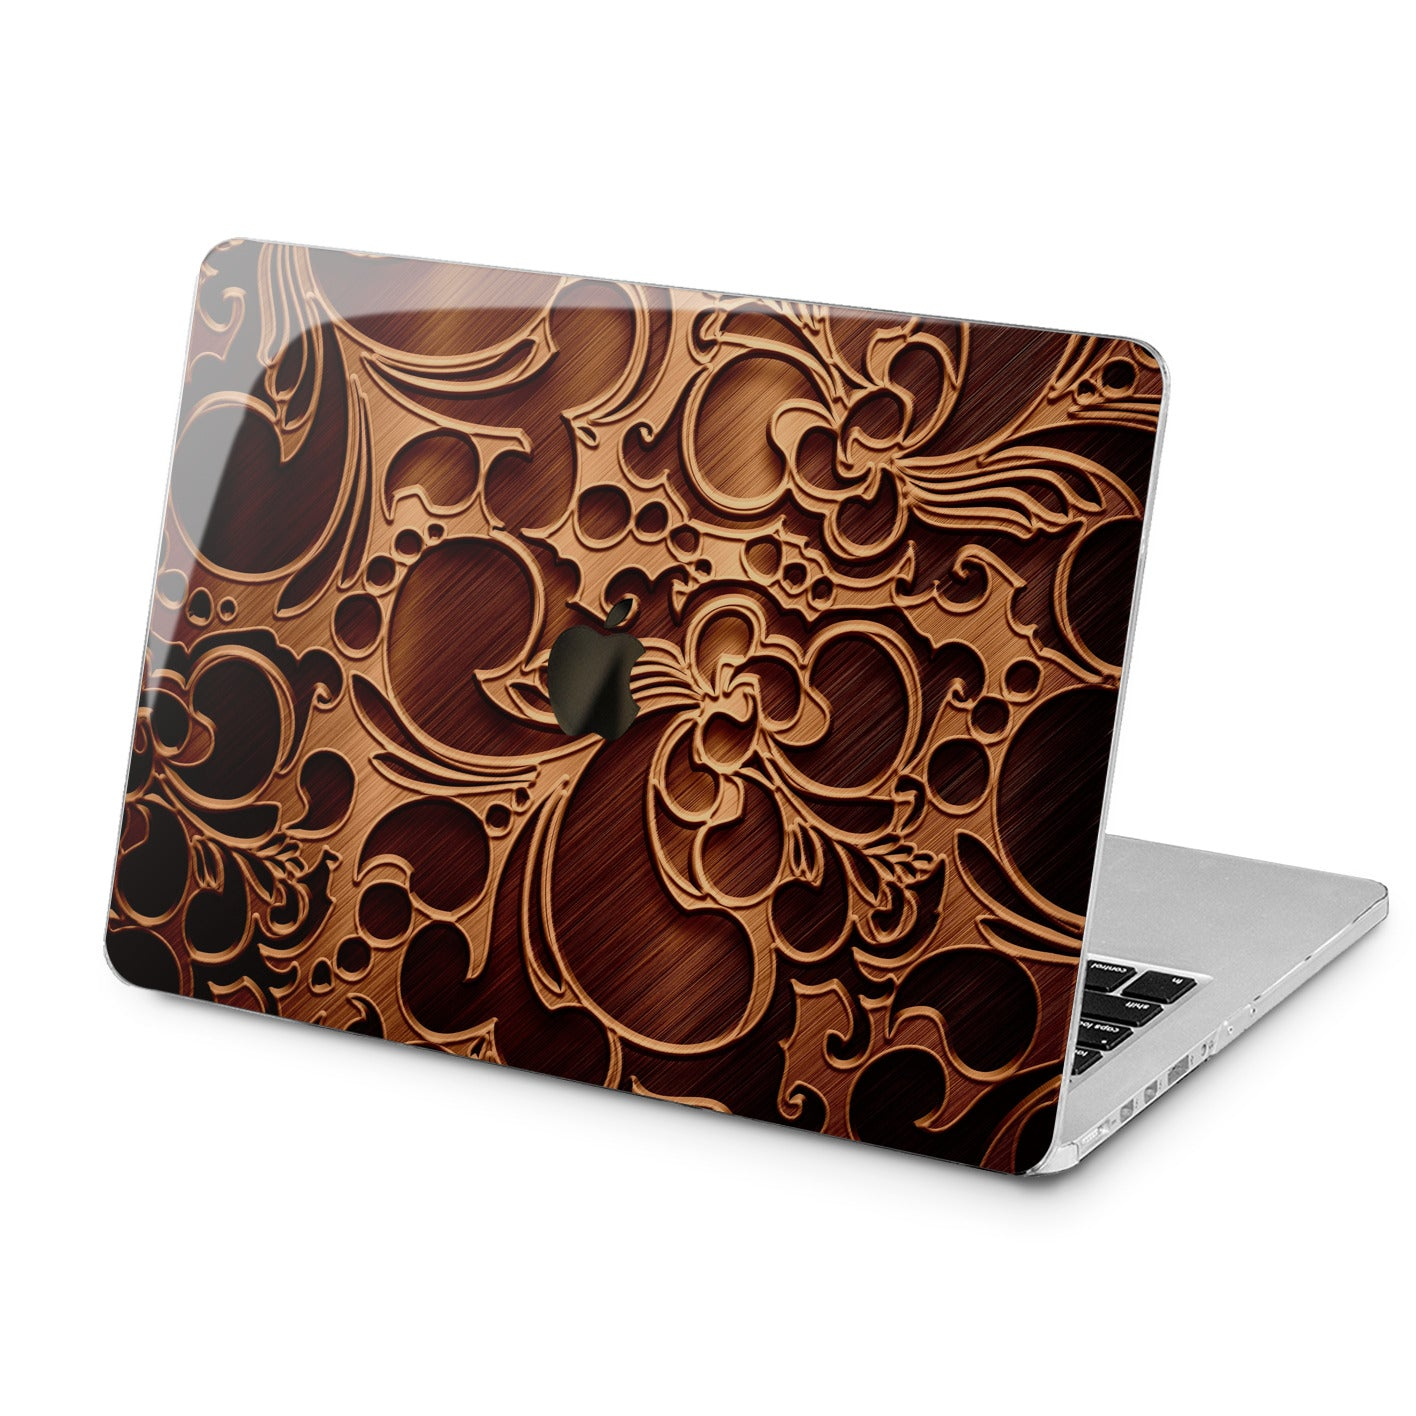 Lex Altern Lex Altern Wooden Ornament Case for your Laptop Apple Macbook.